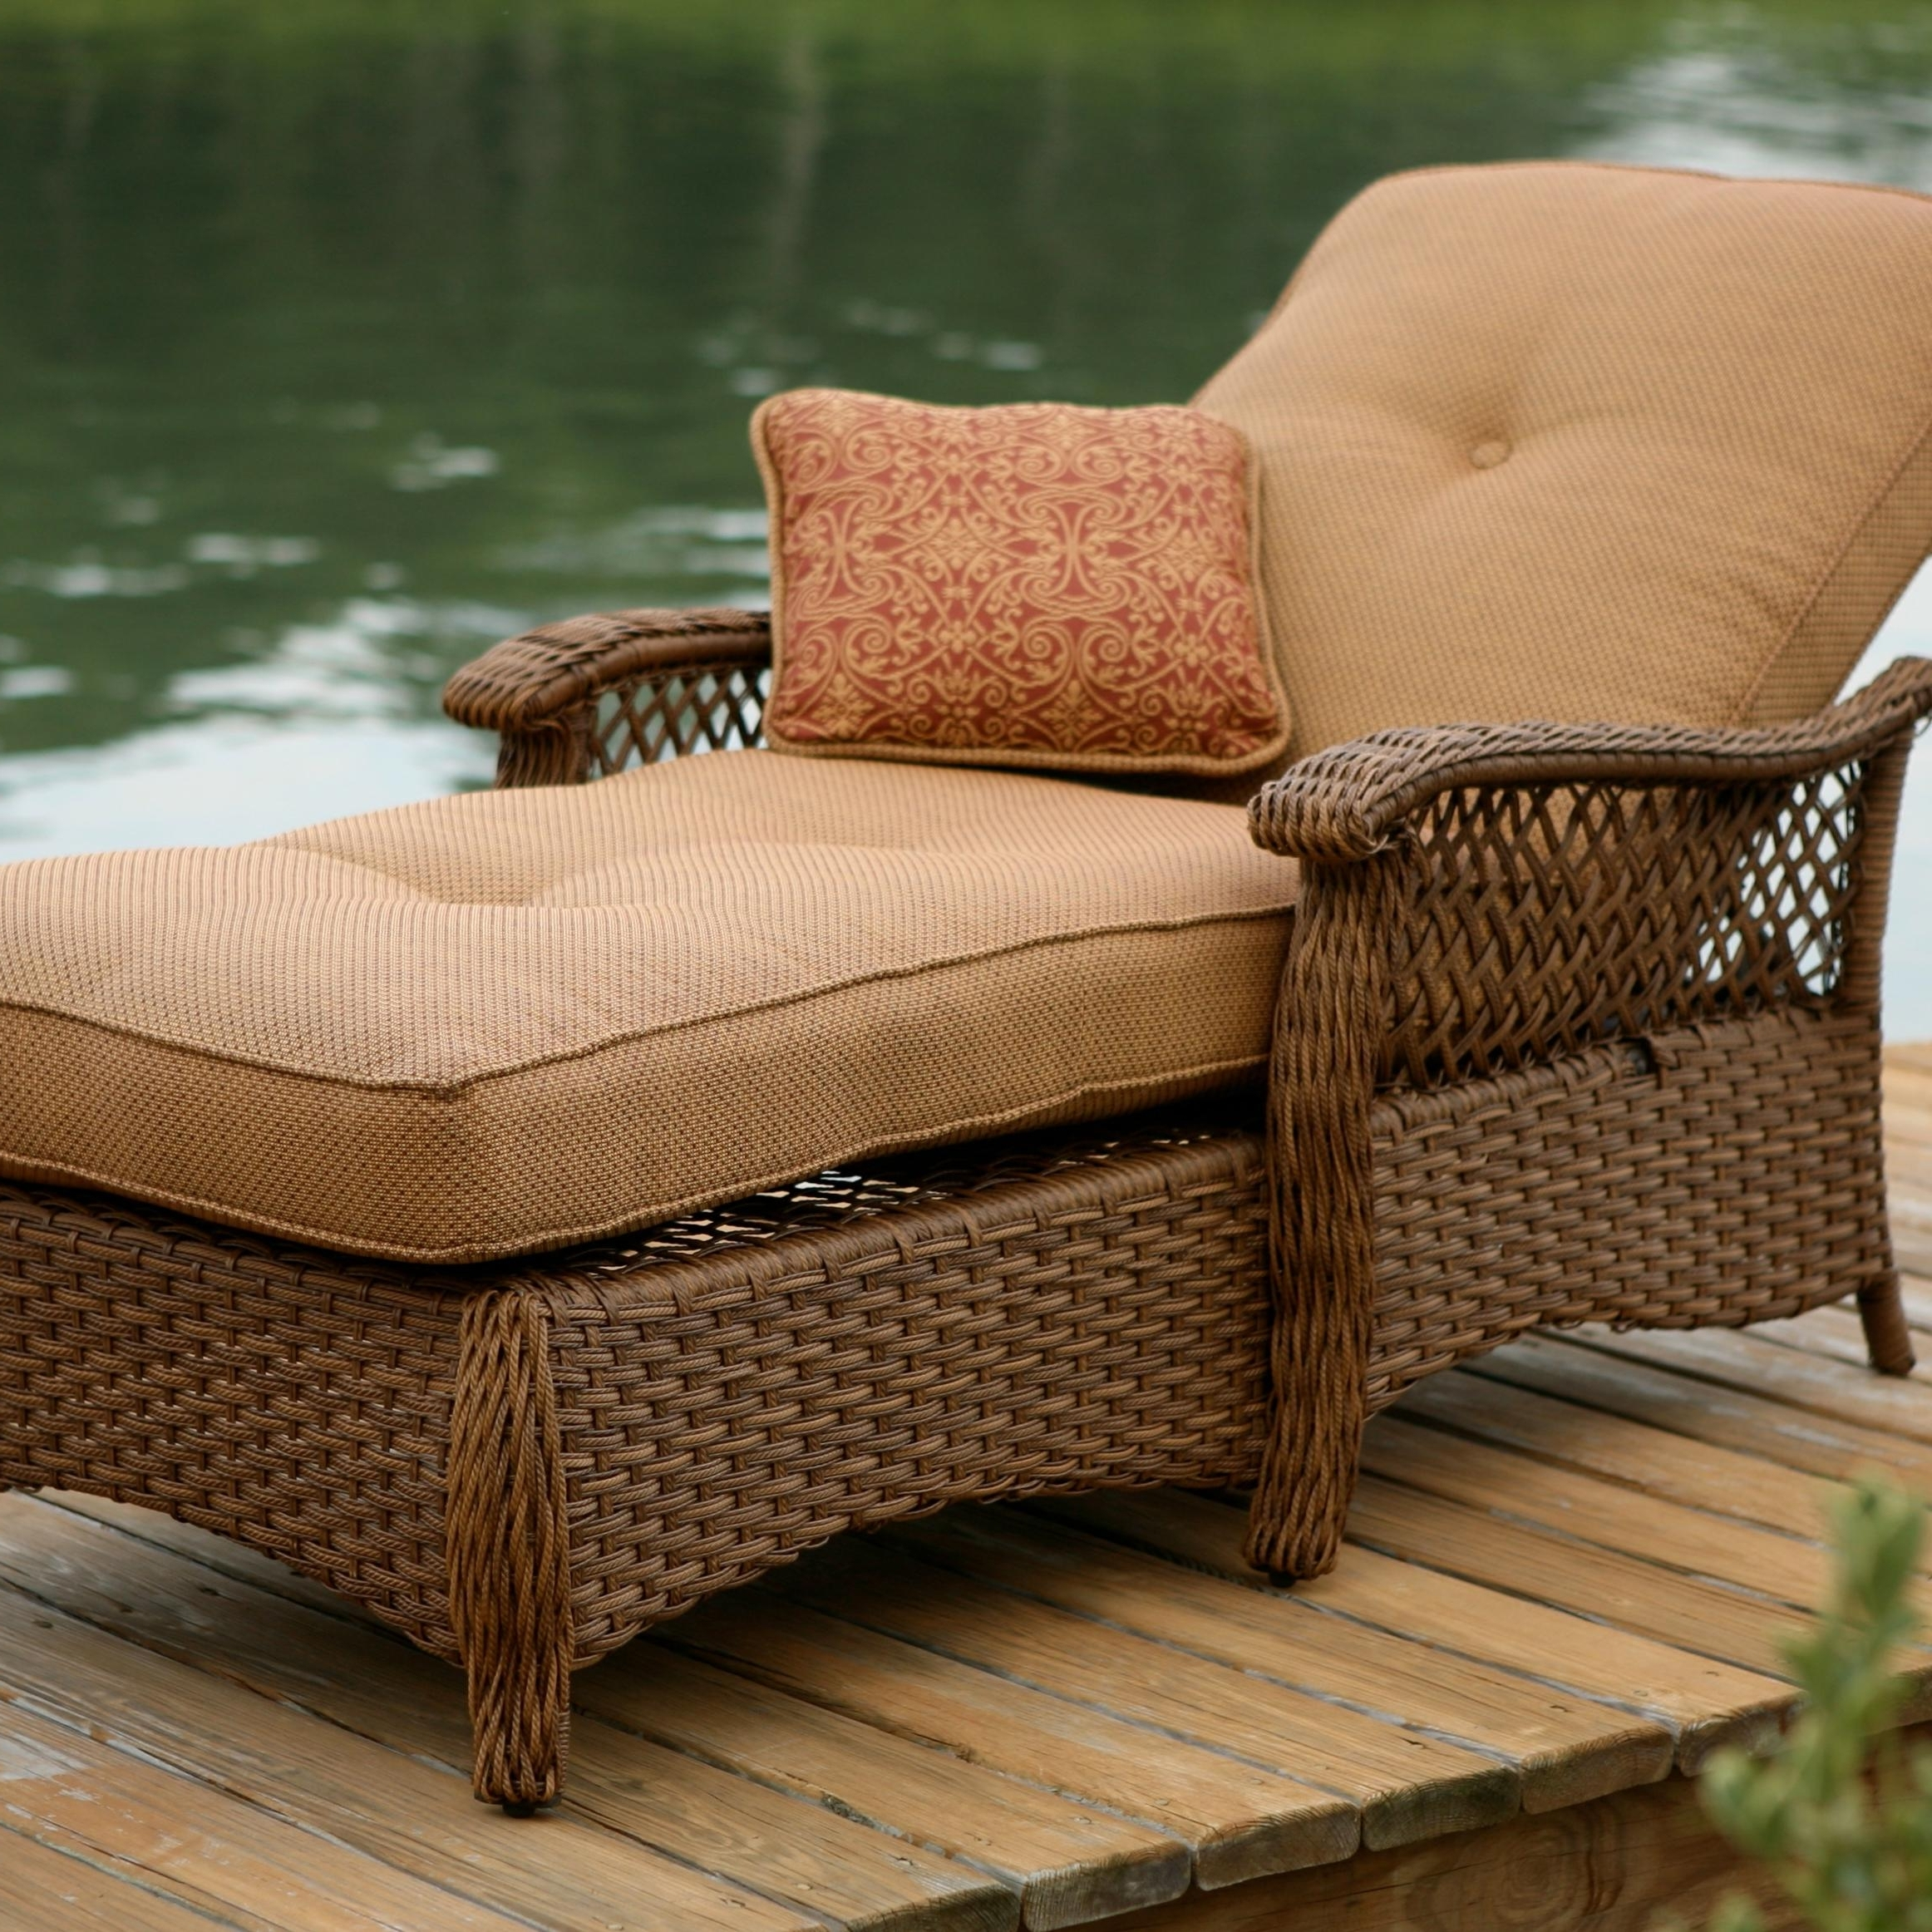 Well Known Wicker Chaise Lounges Regarding Wicker Chaise Lounge Chair • Lounge Chairs Ideas (View 9 of 15)